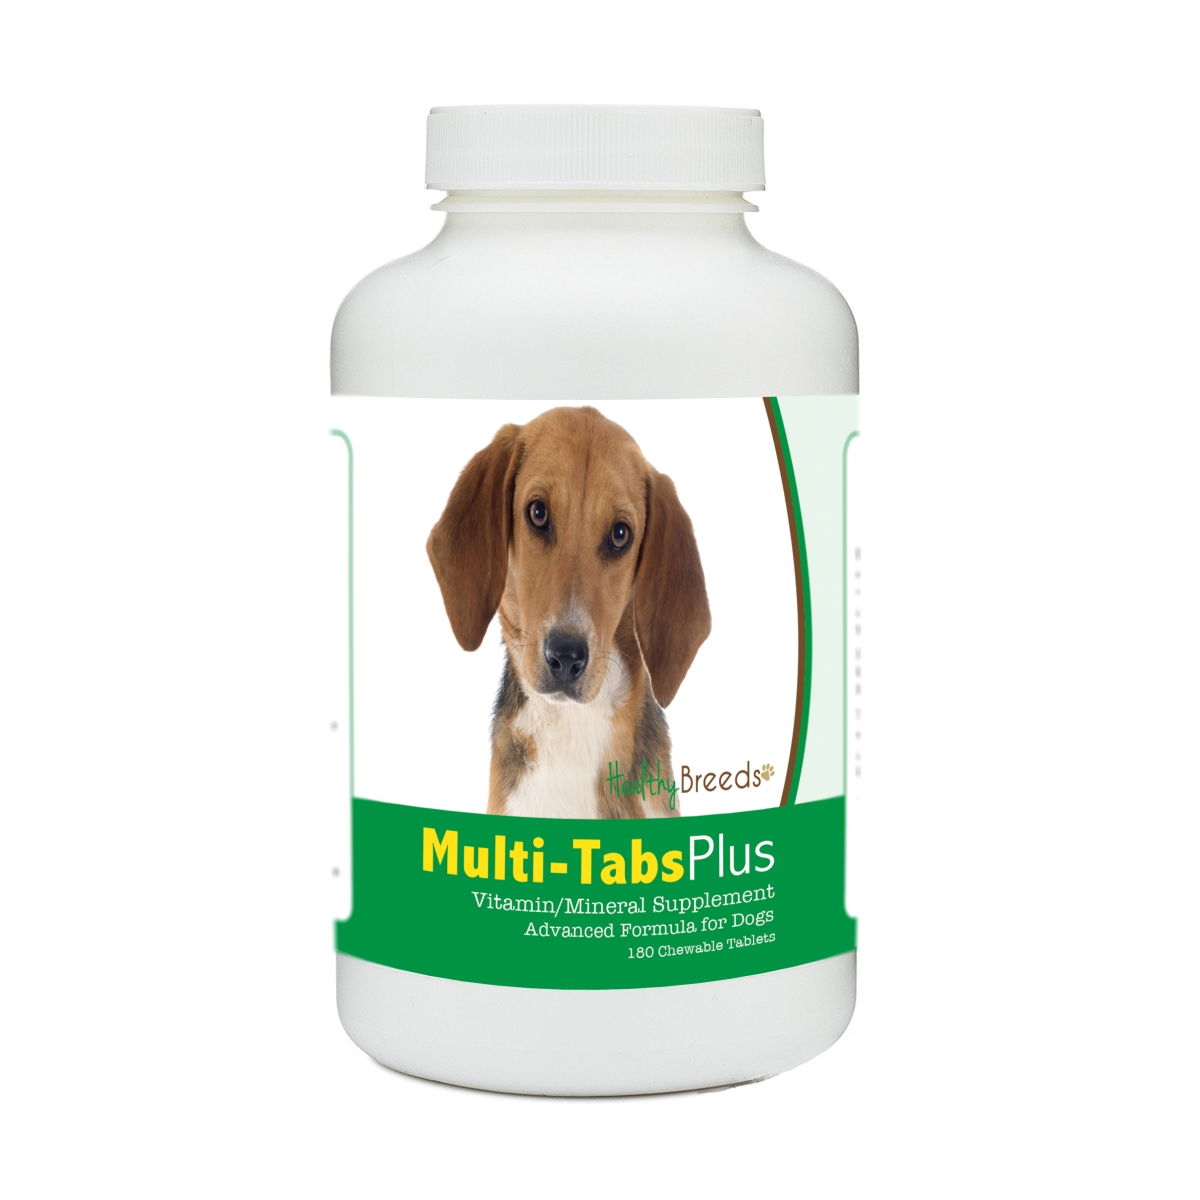 Healthy Breeds 840235174646 Harrier Multi-Tabs Plus Chewable Tablets - 180 Count